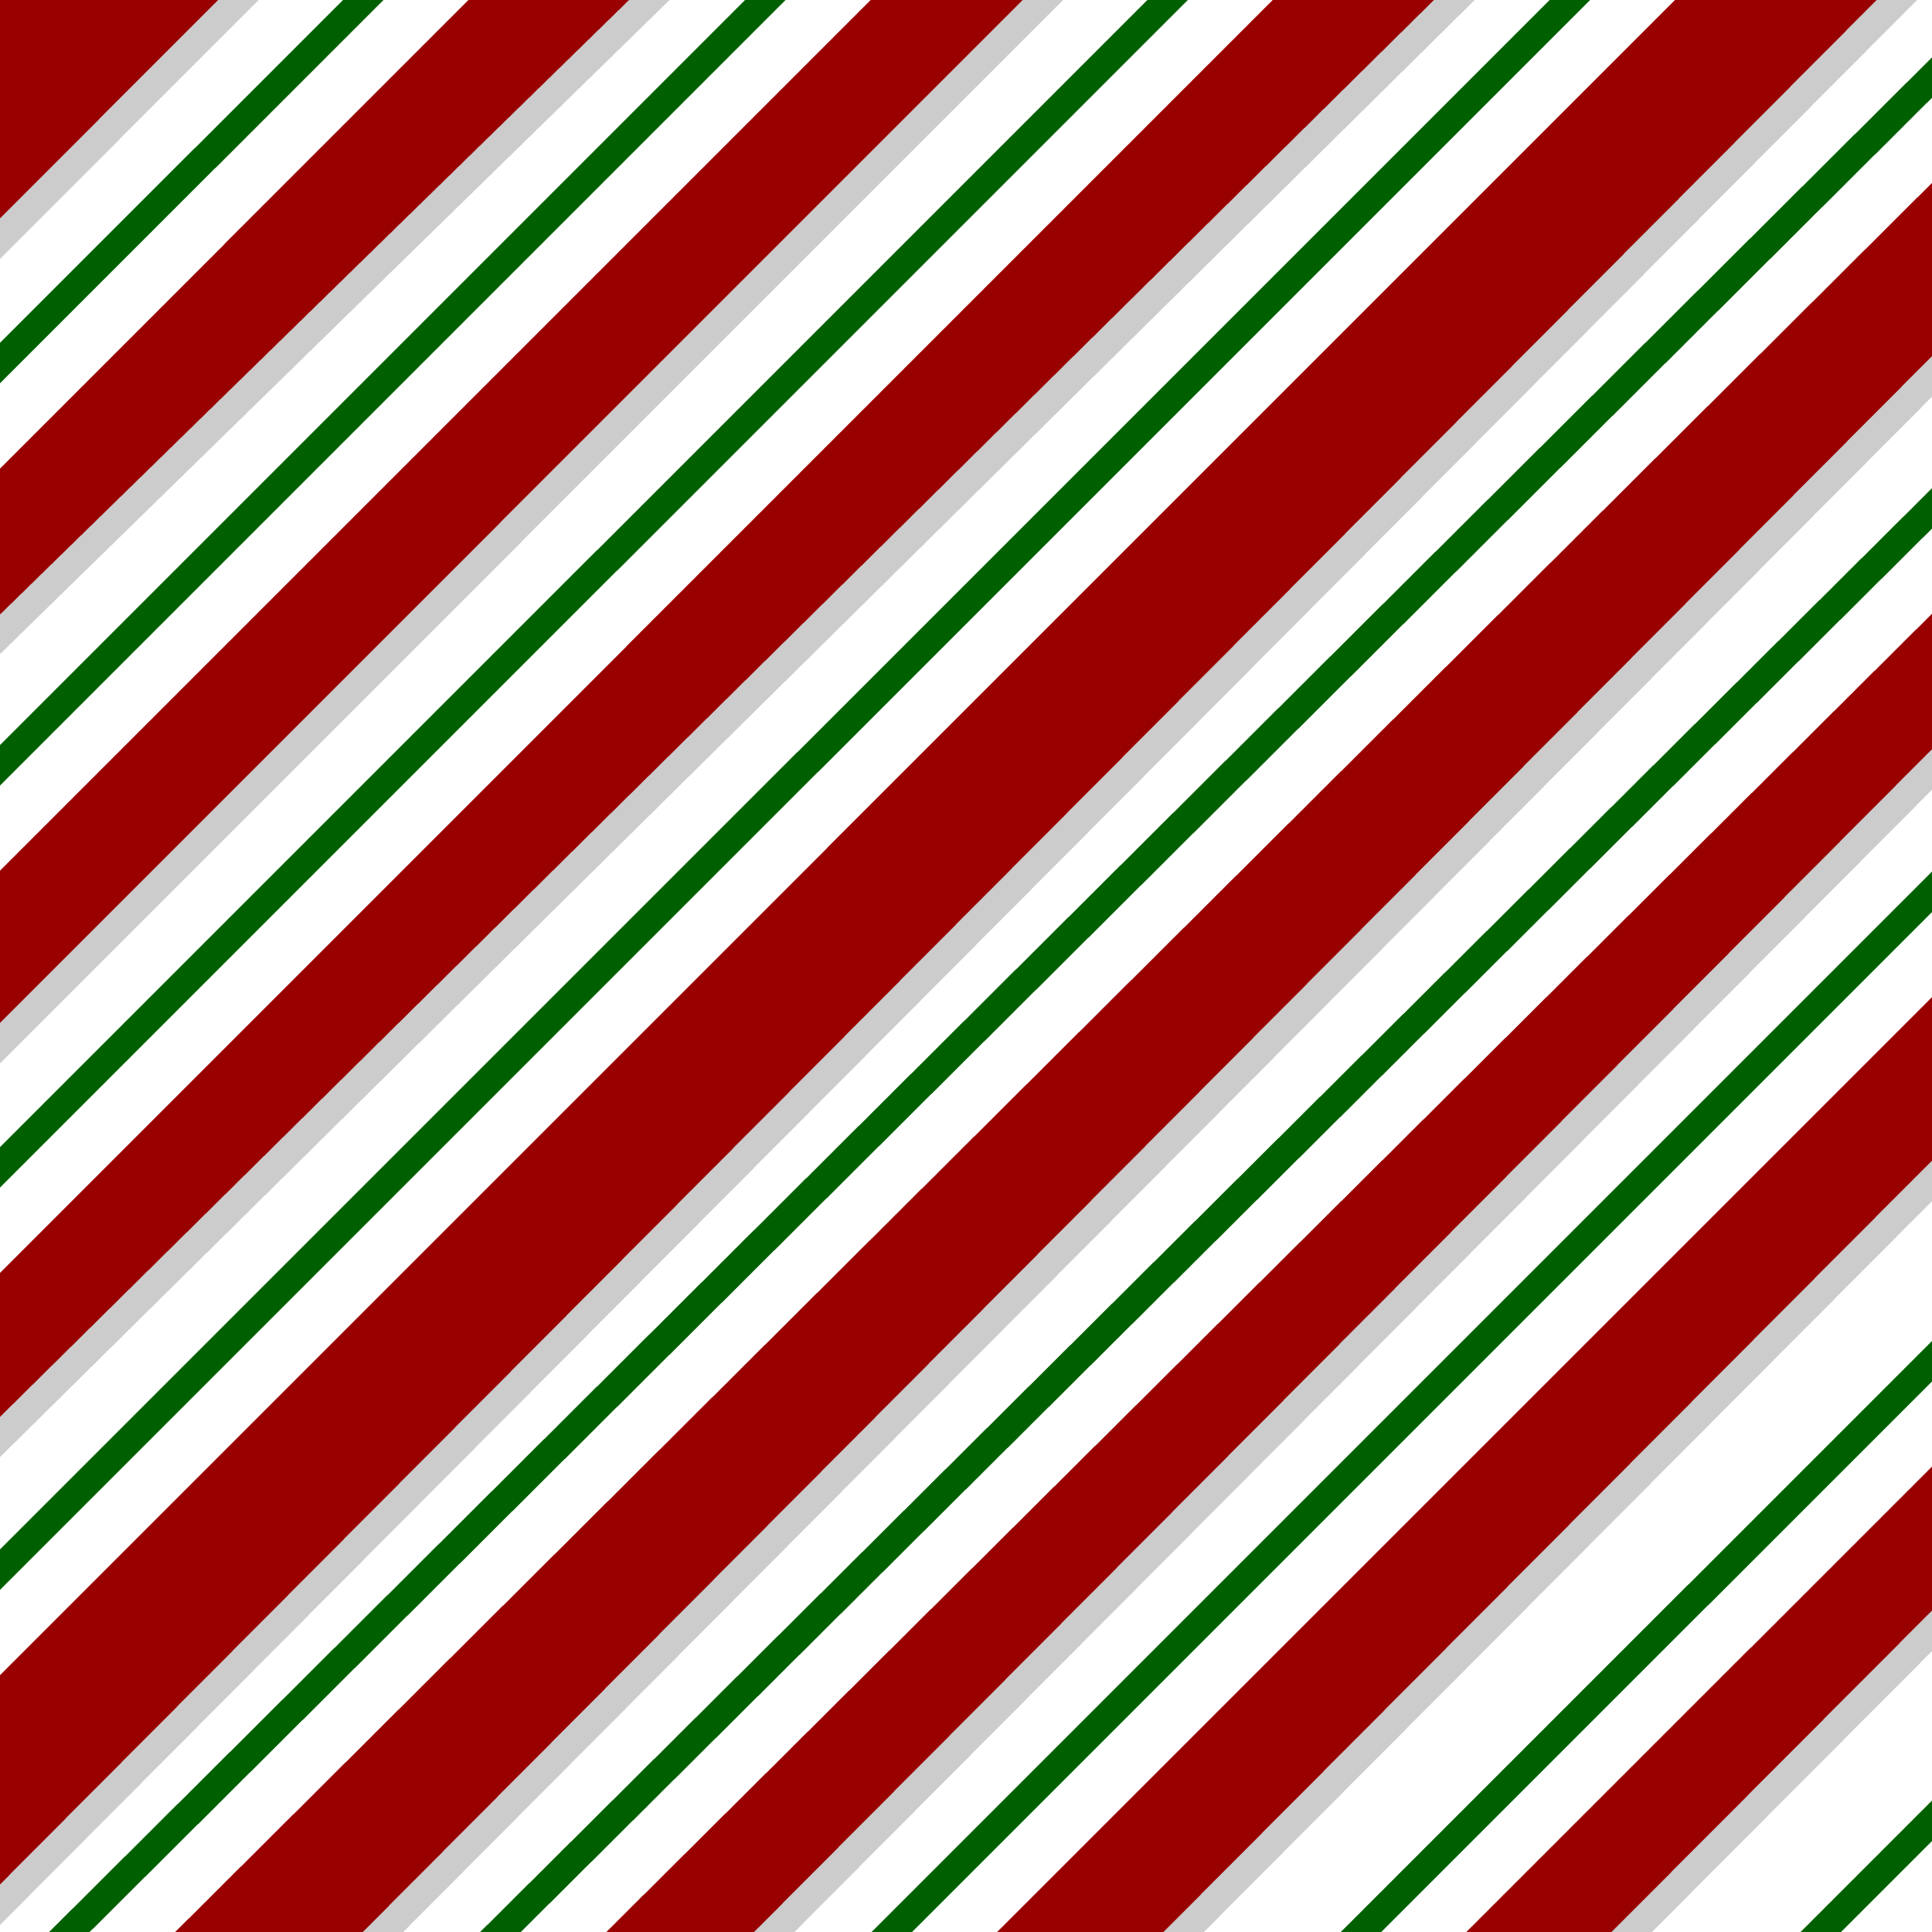 Candy Cane Backgrounds Free Candy Cane Background